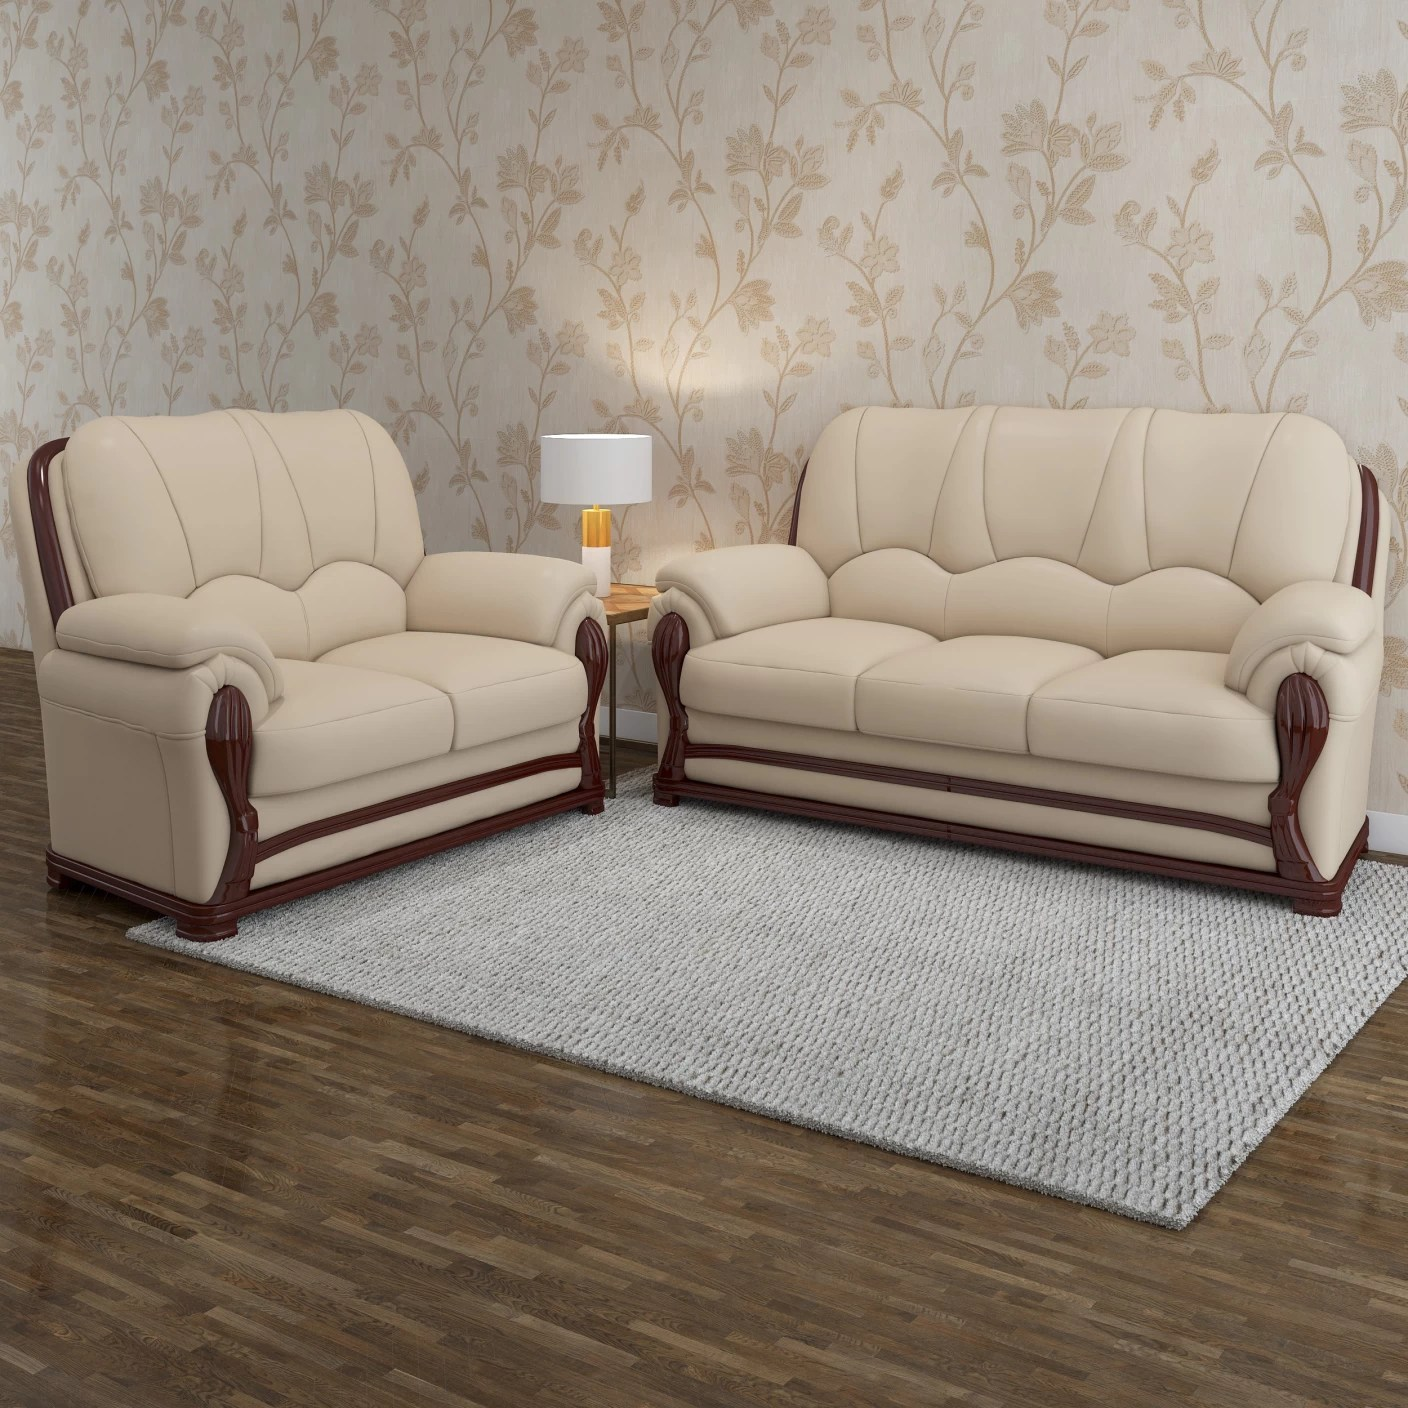 online sofa sets modern white leather vintage ivoria fabric 3 43 2 mahogany set price in